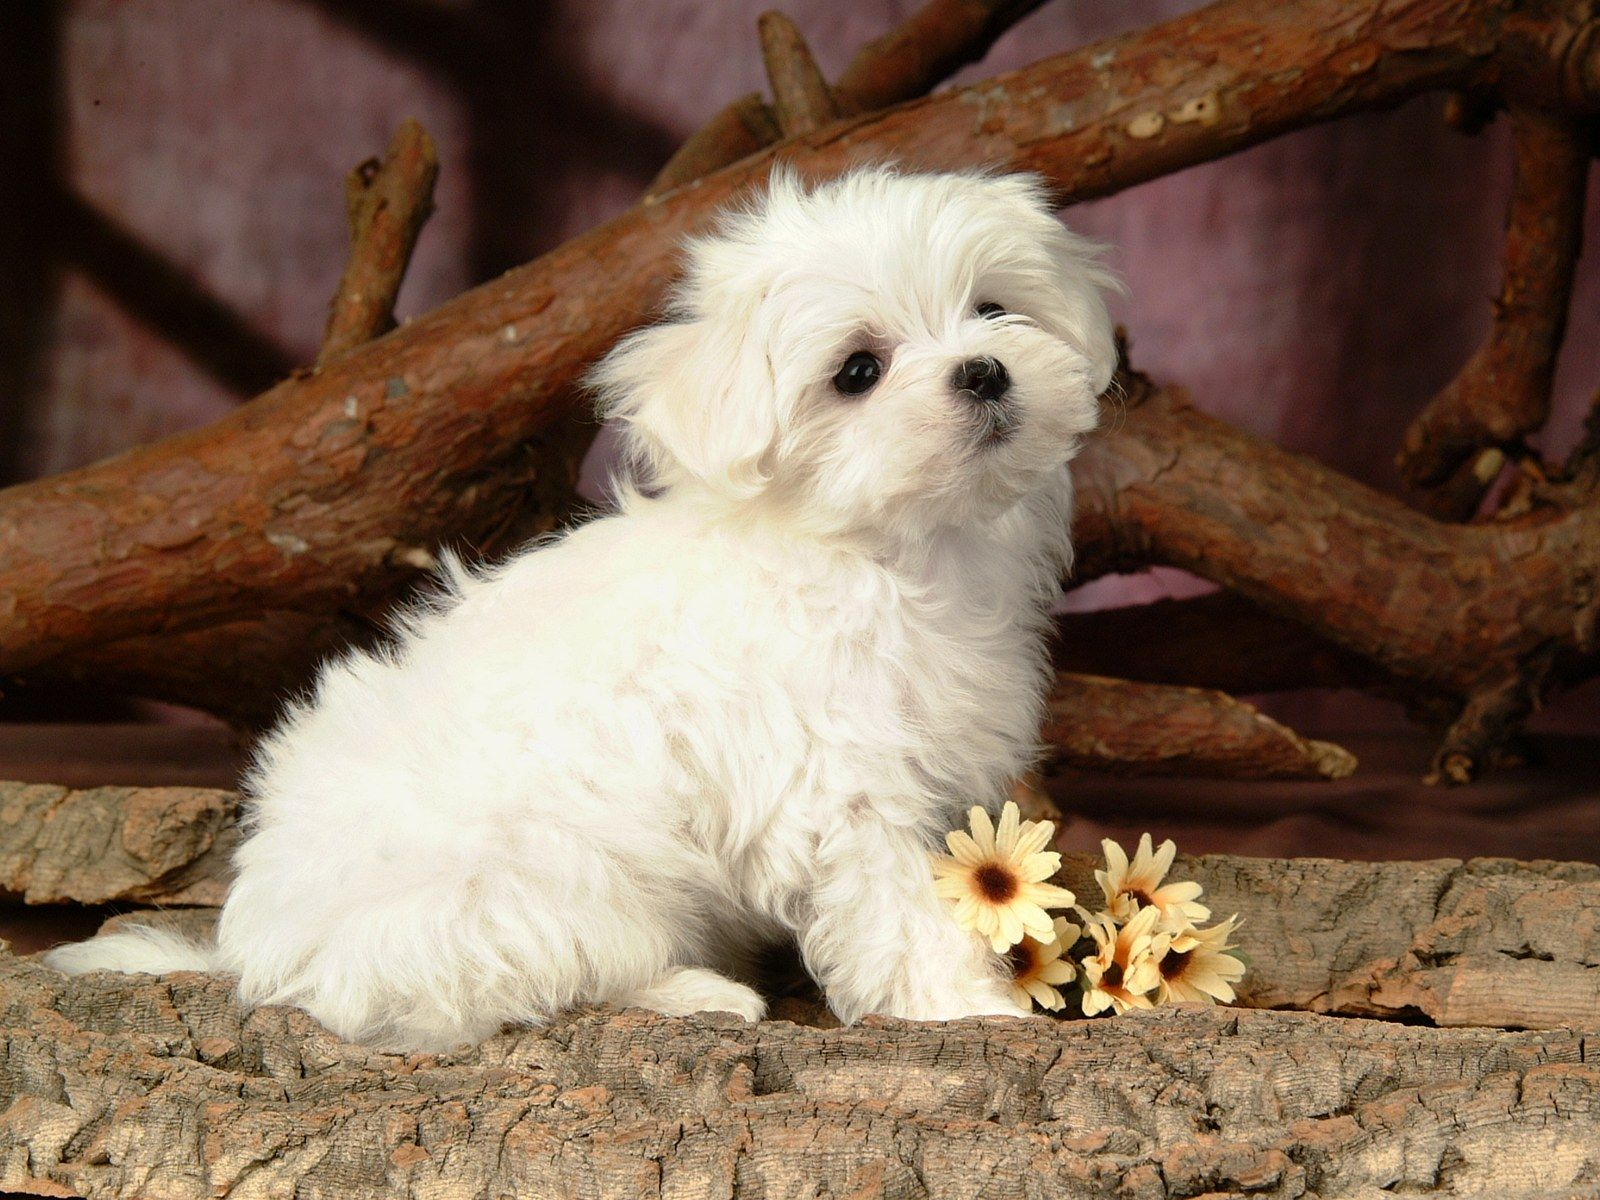 Cute White Fluffy Puppy Dogs With Images Cute White Puppies